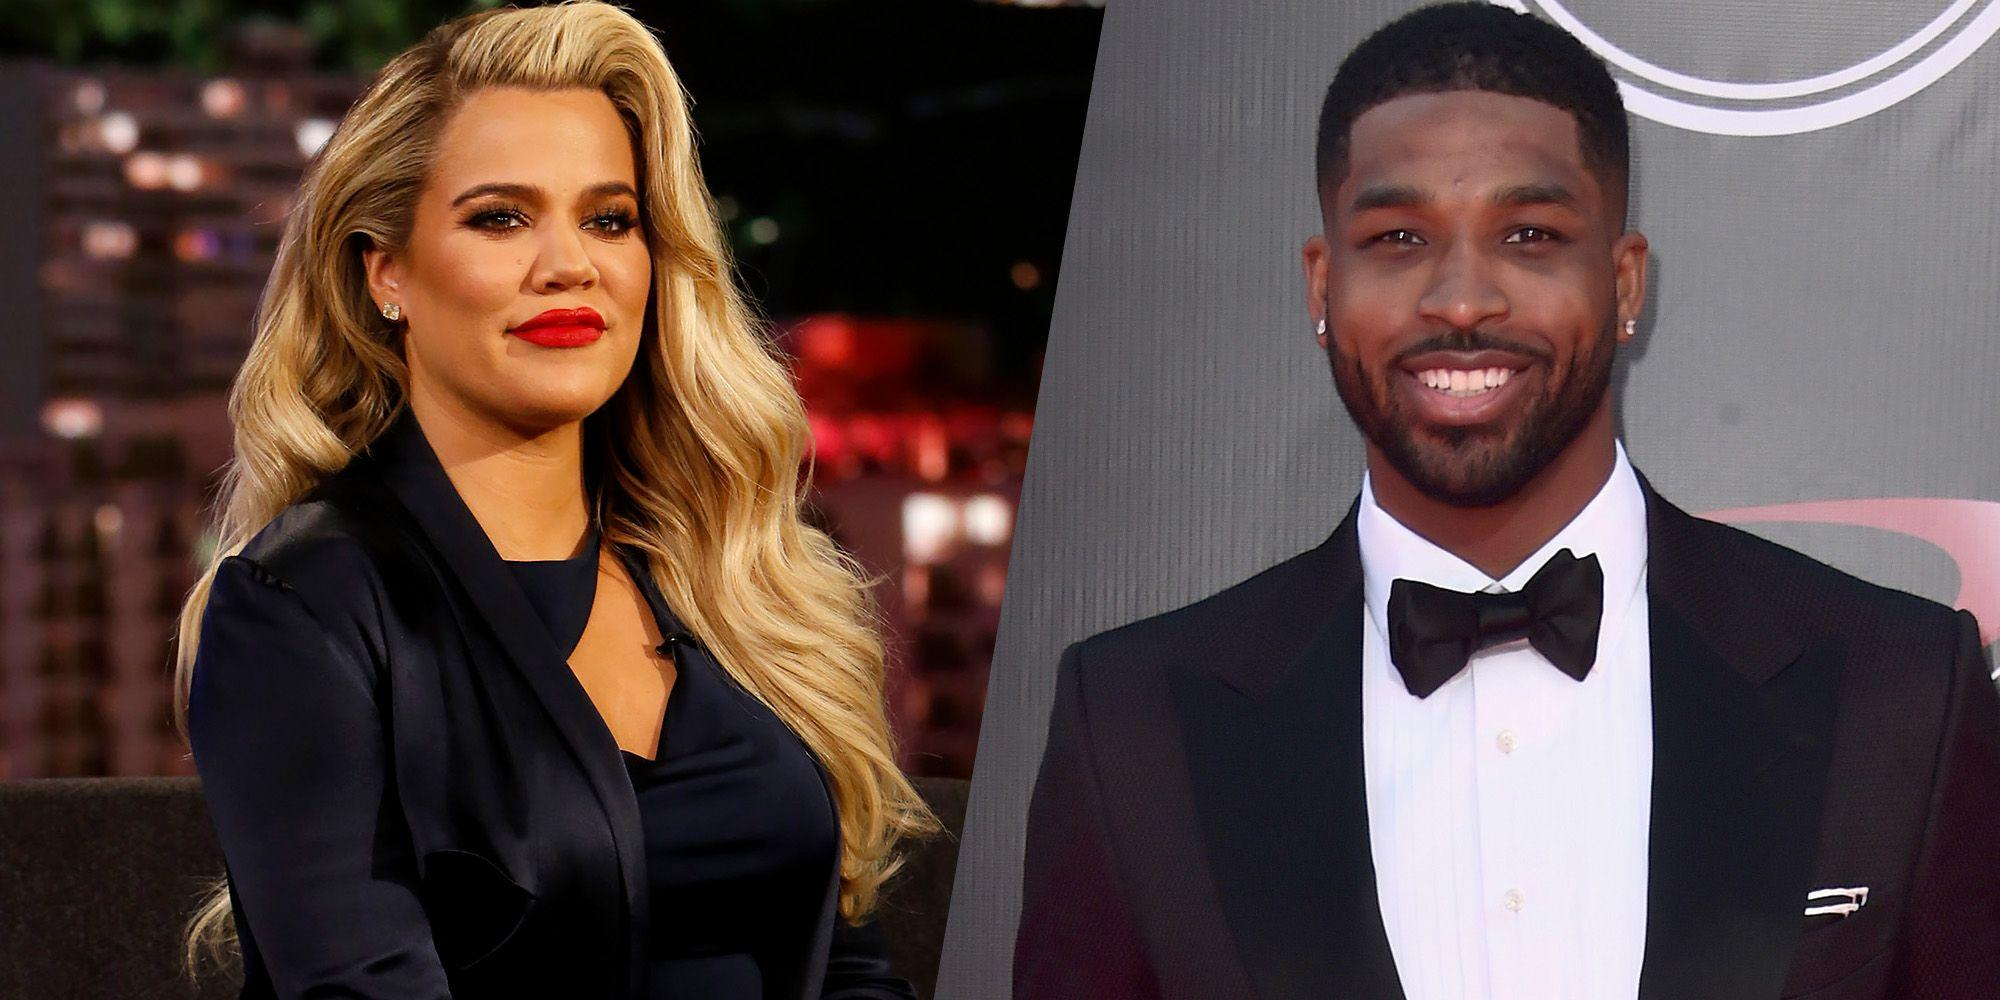 KUWTK: Tristan Thompson Showers Khloe Kardashian With Love After She Posts Another Hot Pic - 'My Queen!'